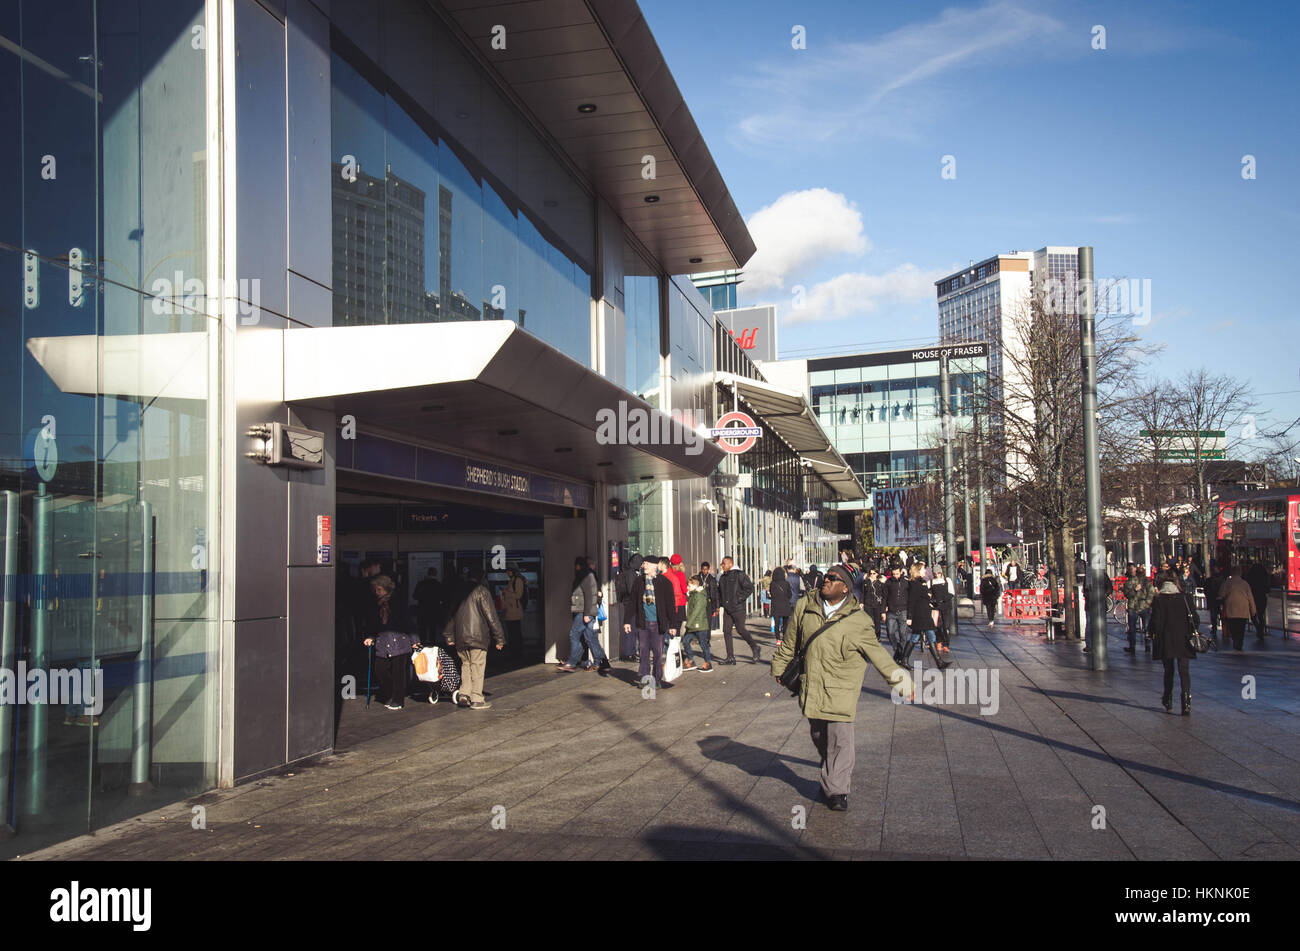 looking at the entrance to Shepherds Bush tube station in the foreground with Westfield Shopping Centre in the background, Stock Photo